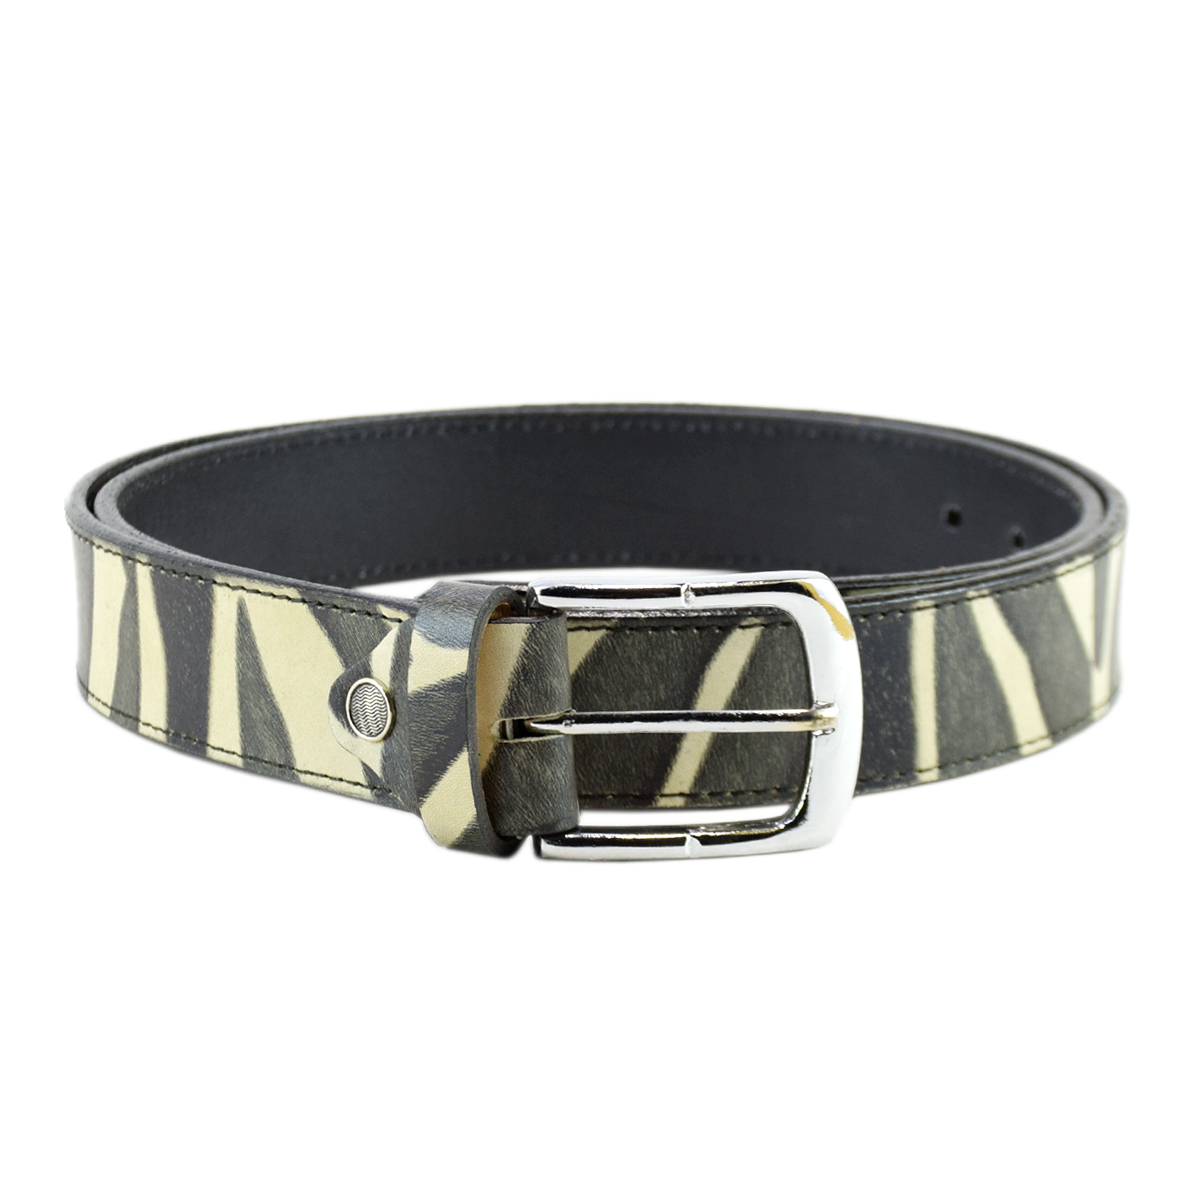 Casual Topstitched Leather Belt 1.5""